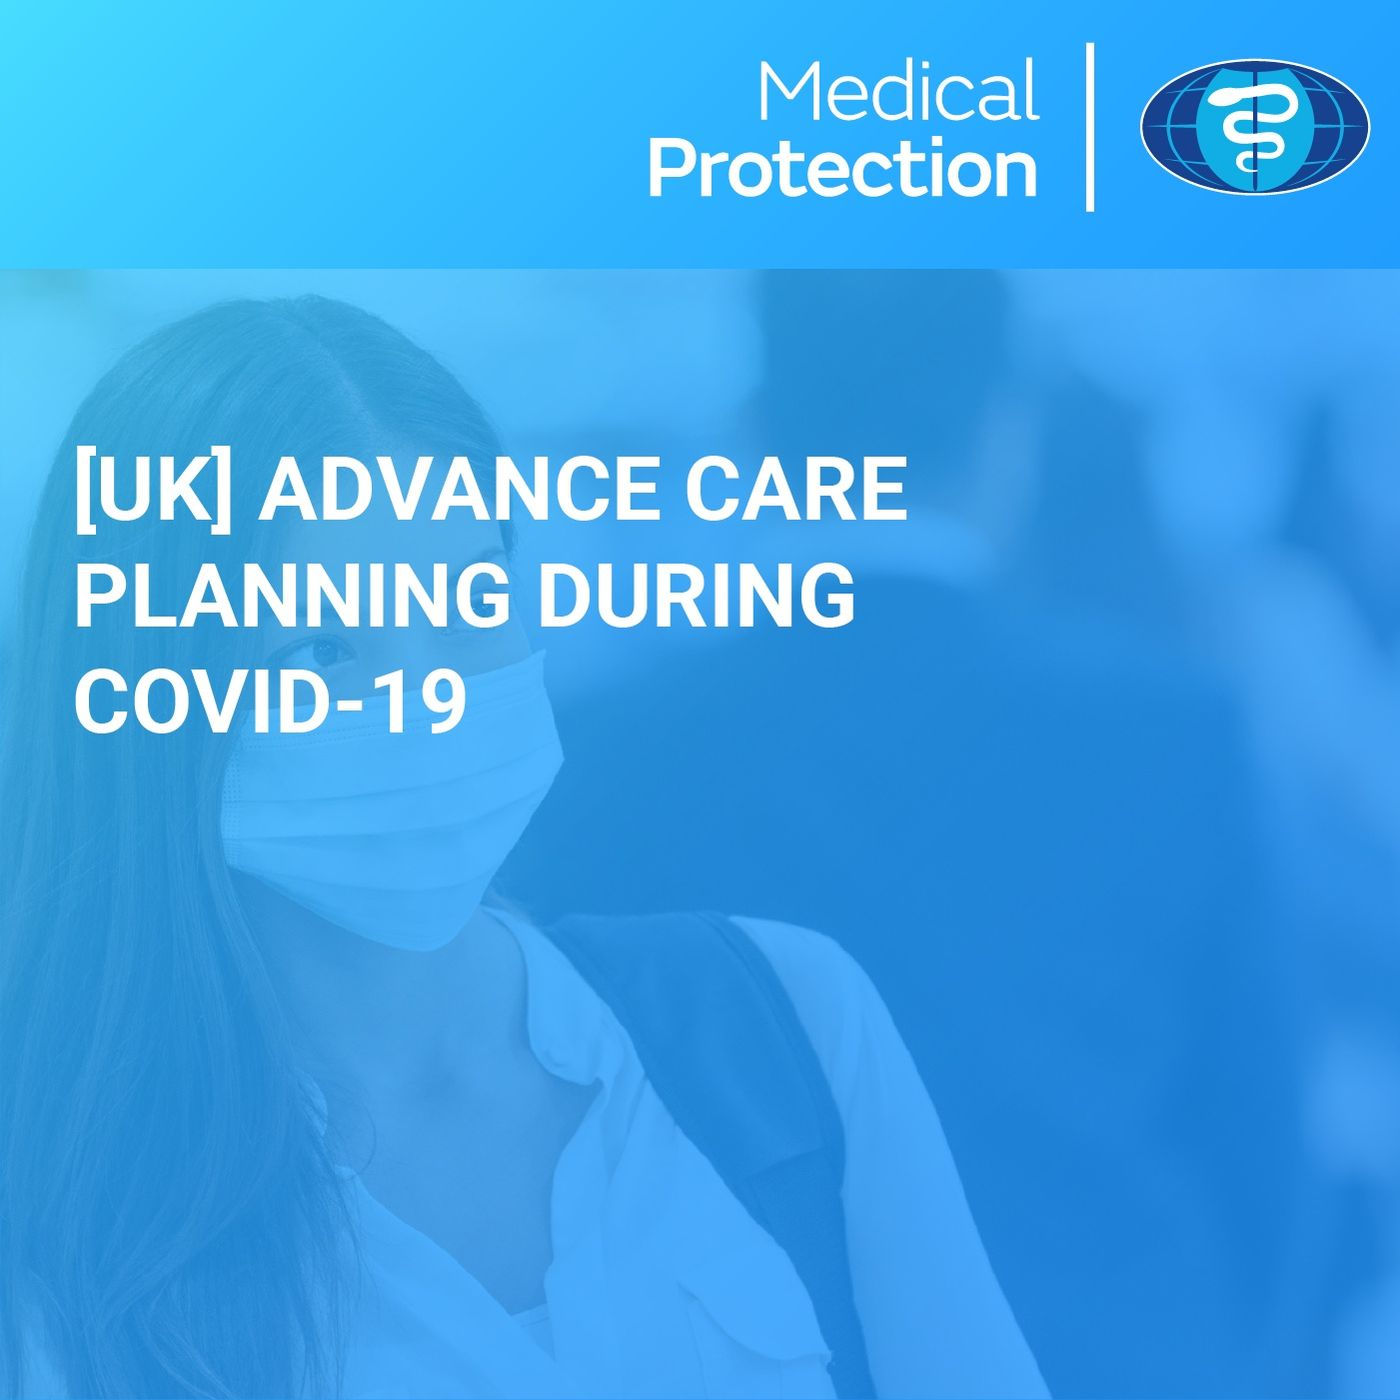 [UK] Advance Care Planning